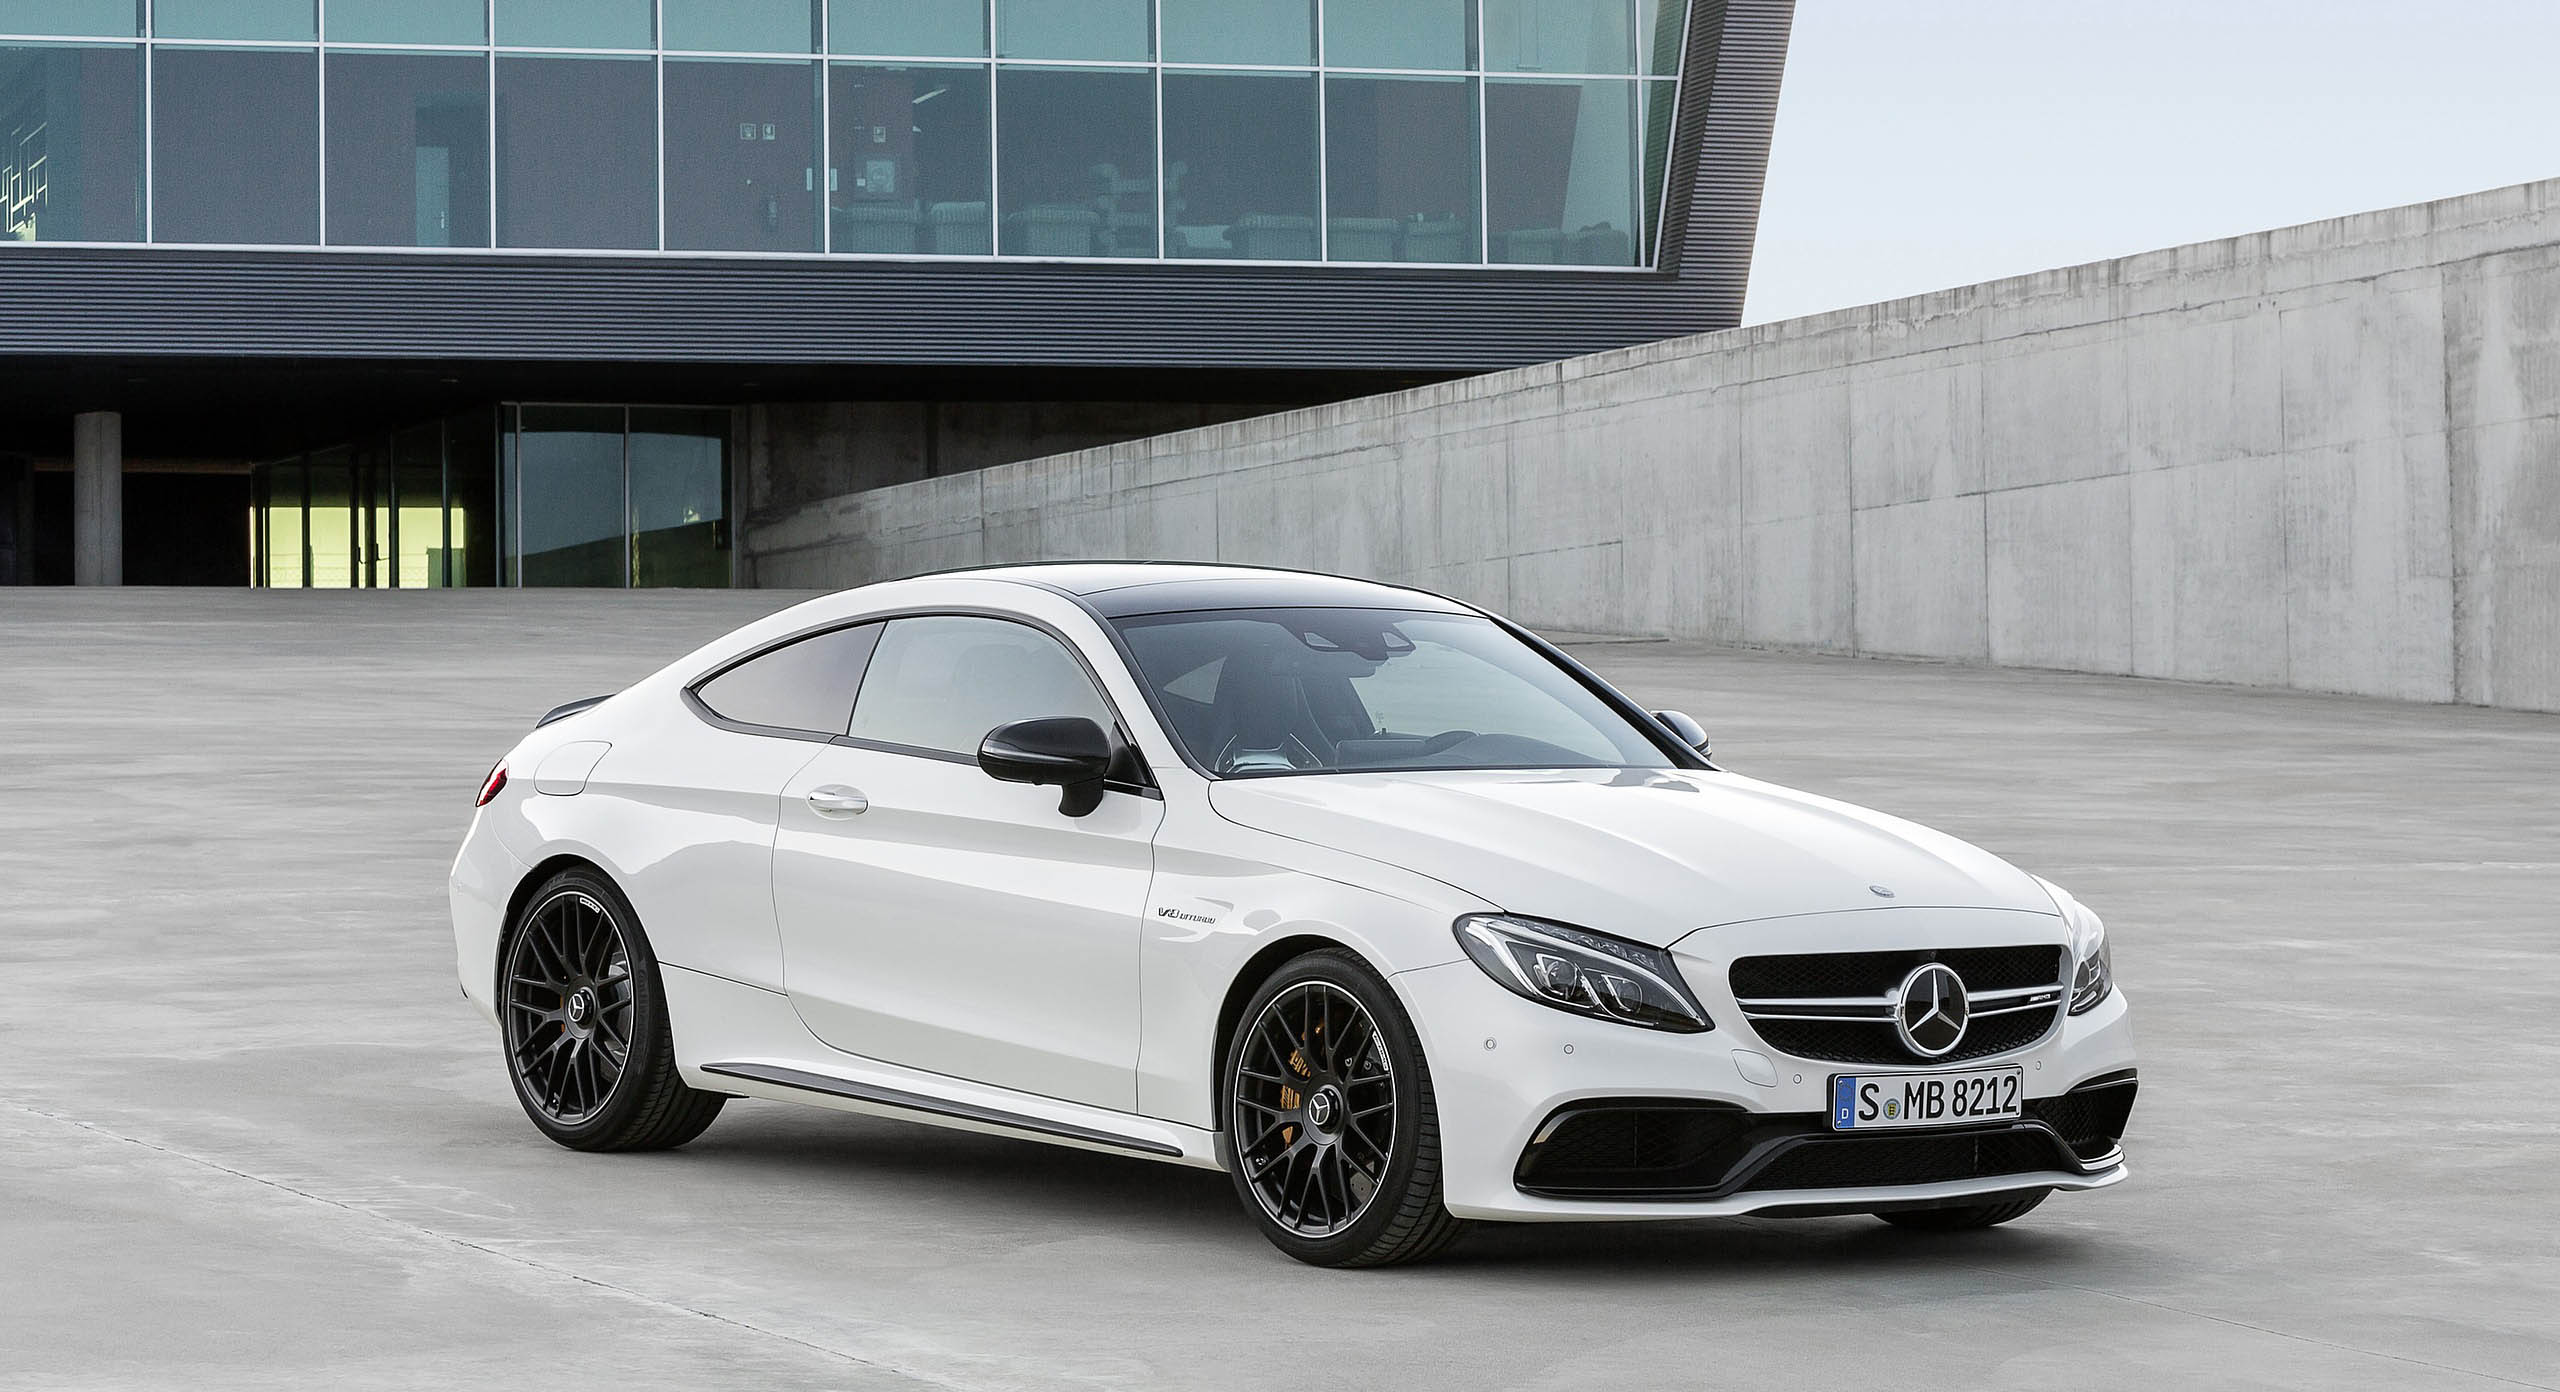 2017 Mercedes‑AMG C63 Coupe White Colors #24969 - 2017 Cars Wallpaper